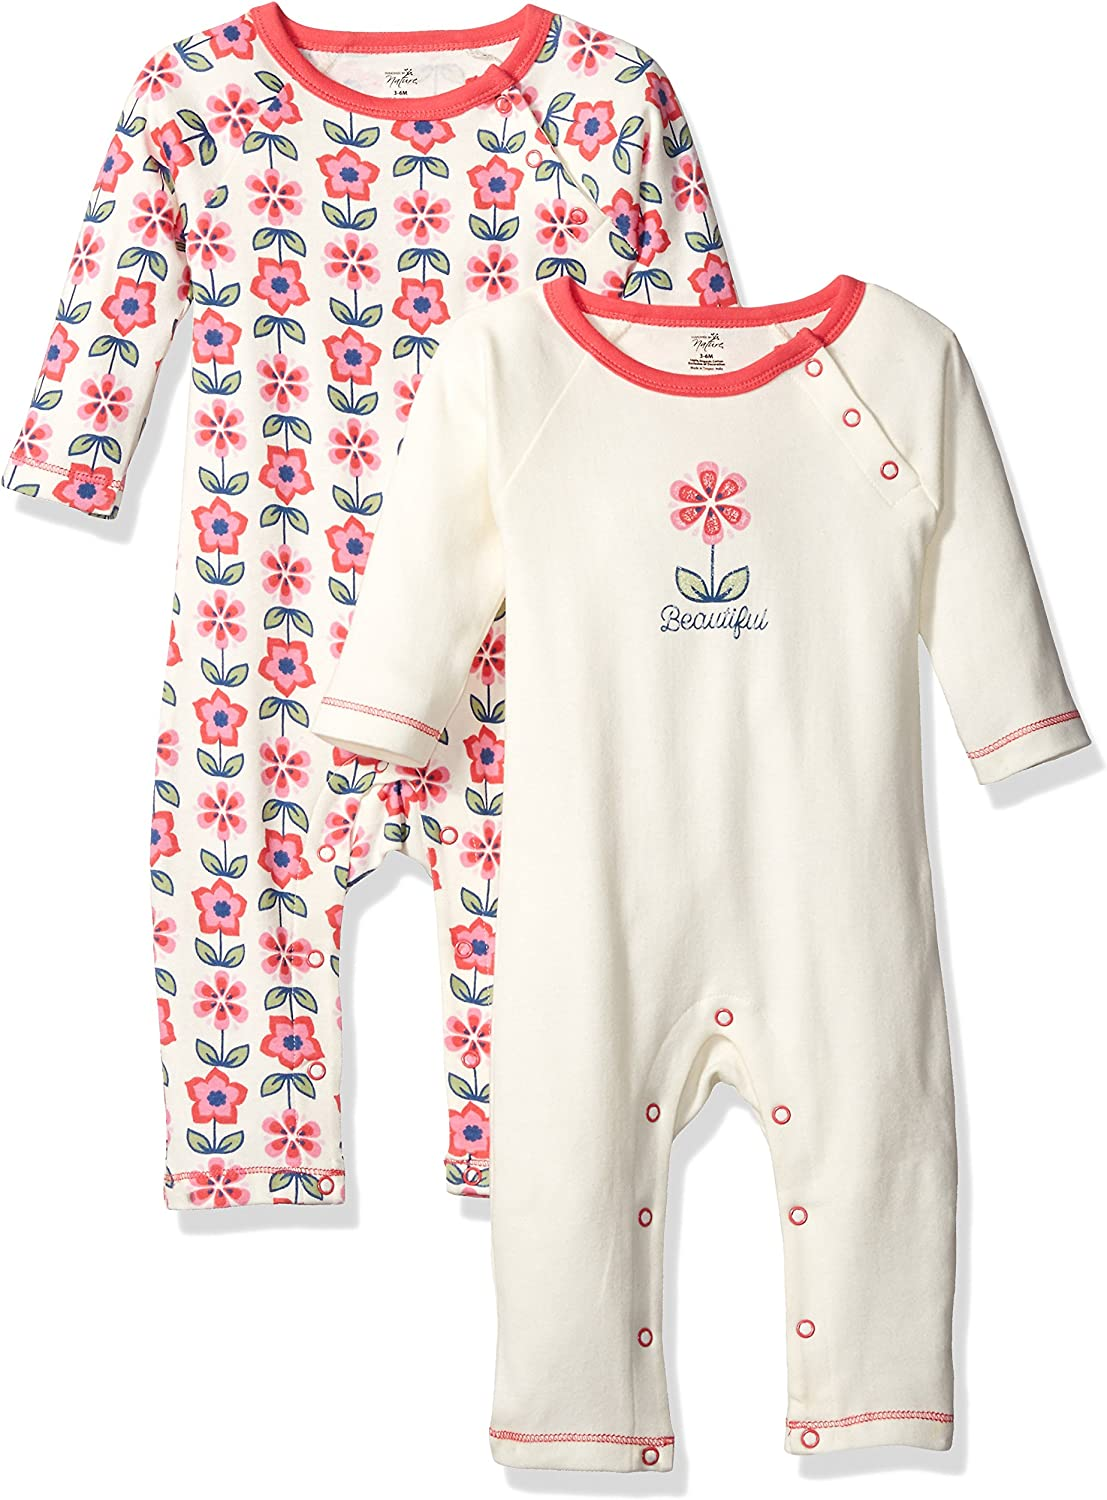 Touched by Nature Baby Organic Cotton Coveralls